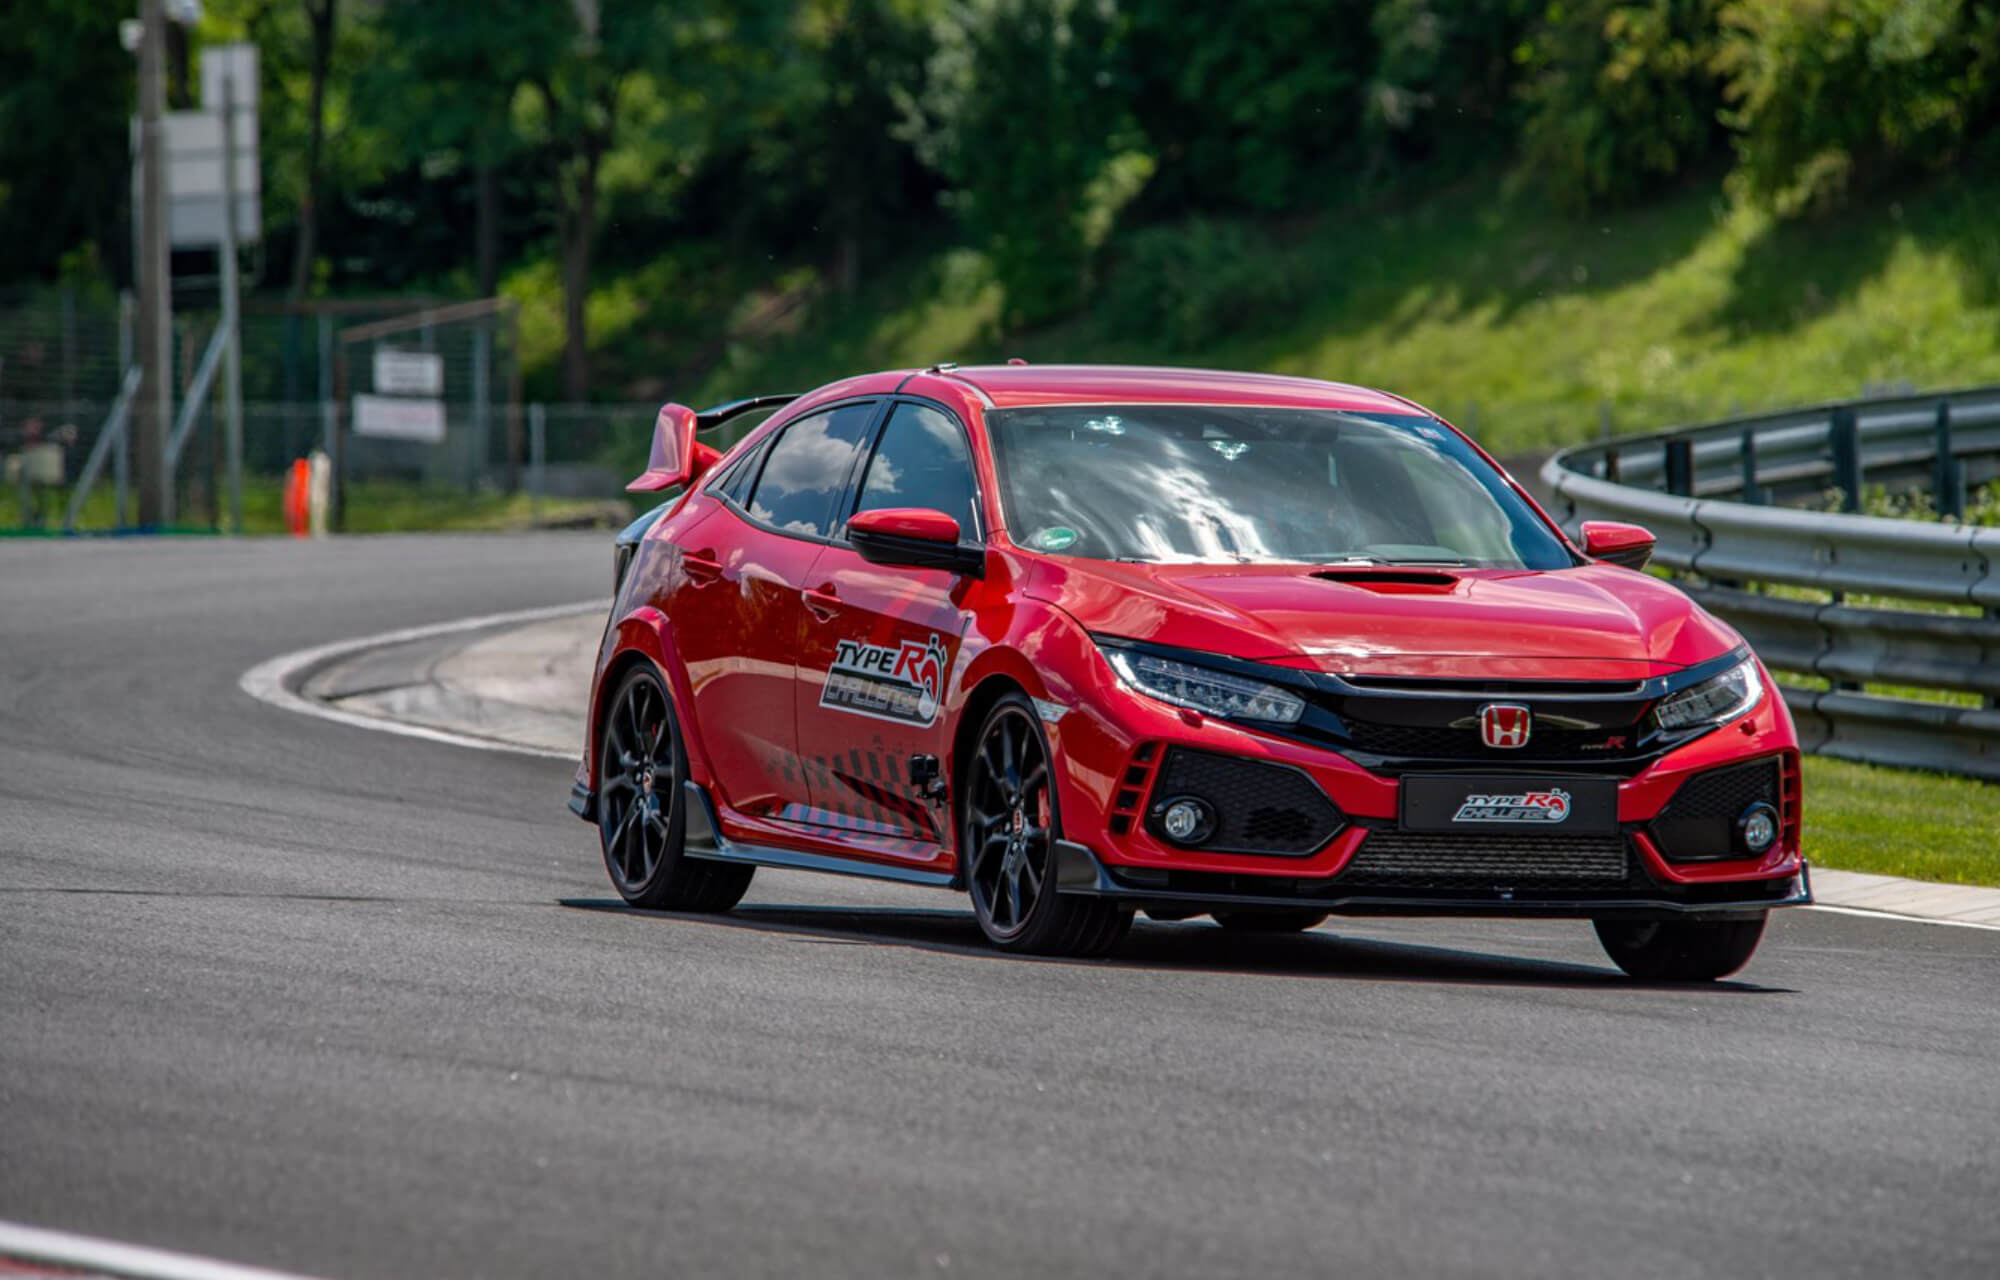 Jenson Button secures Hondas fifth and final planned lap record in Civic Type R Challenge 2018